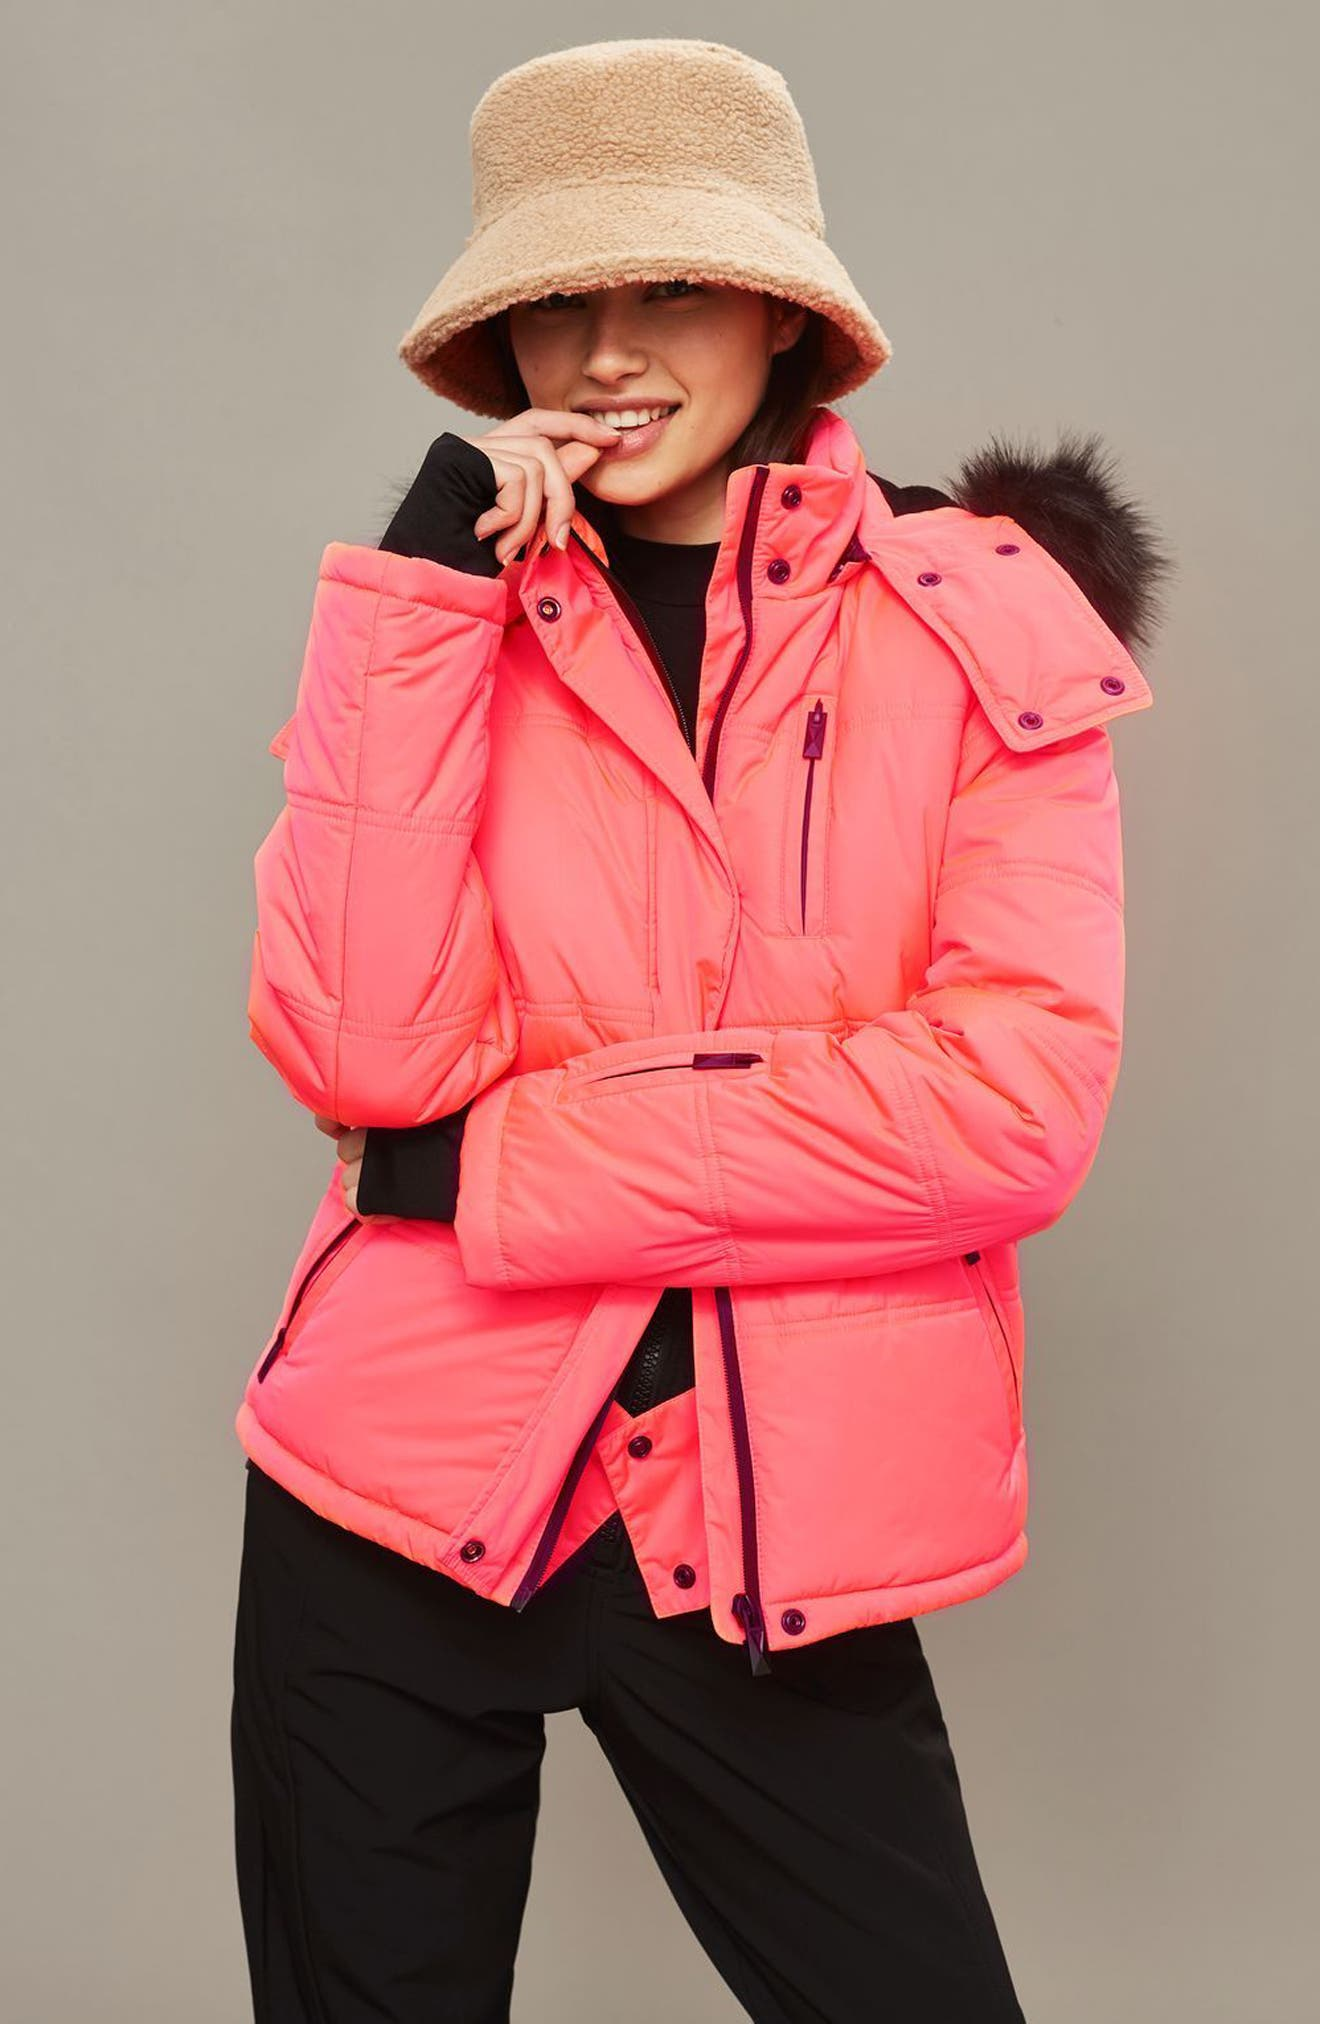 SNO Rio Faux Fur Hood Neon Puffer Jacket,                             Alternate thumbnail 2, color,                             Pink